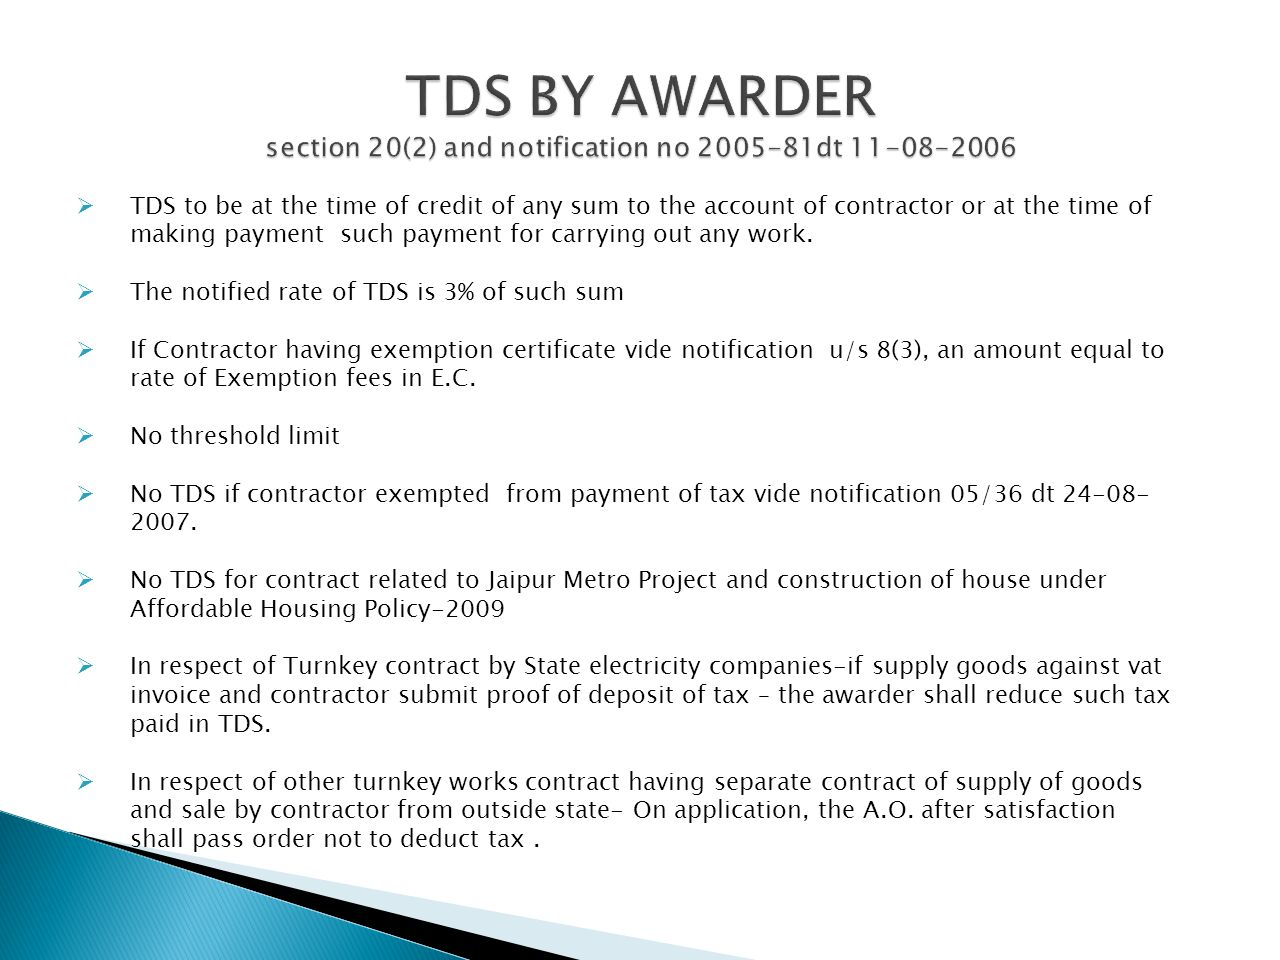 TDS BY AWARDER section 20(2) and notification no 2005-81dt 11-08-2006